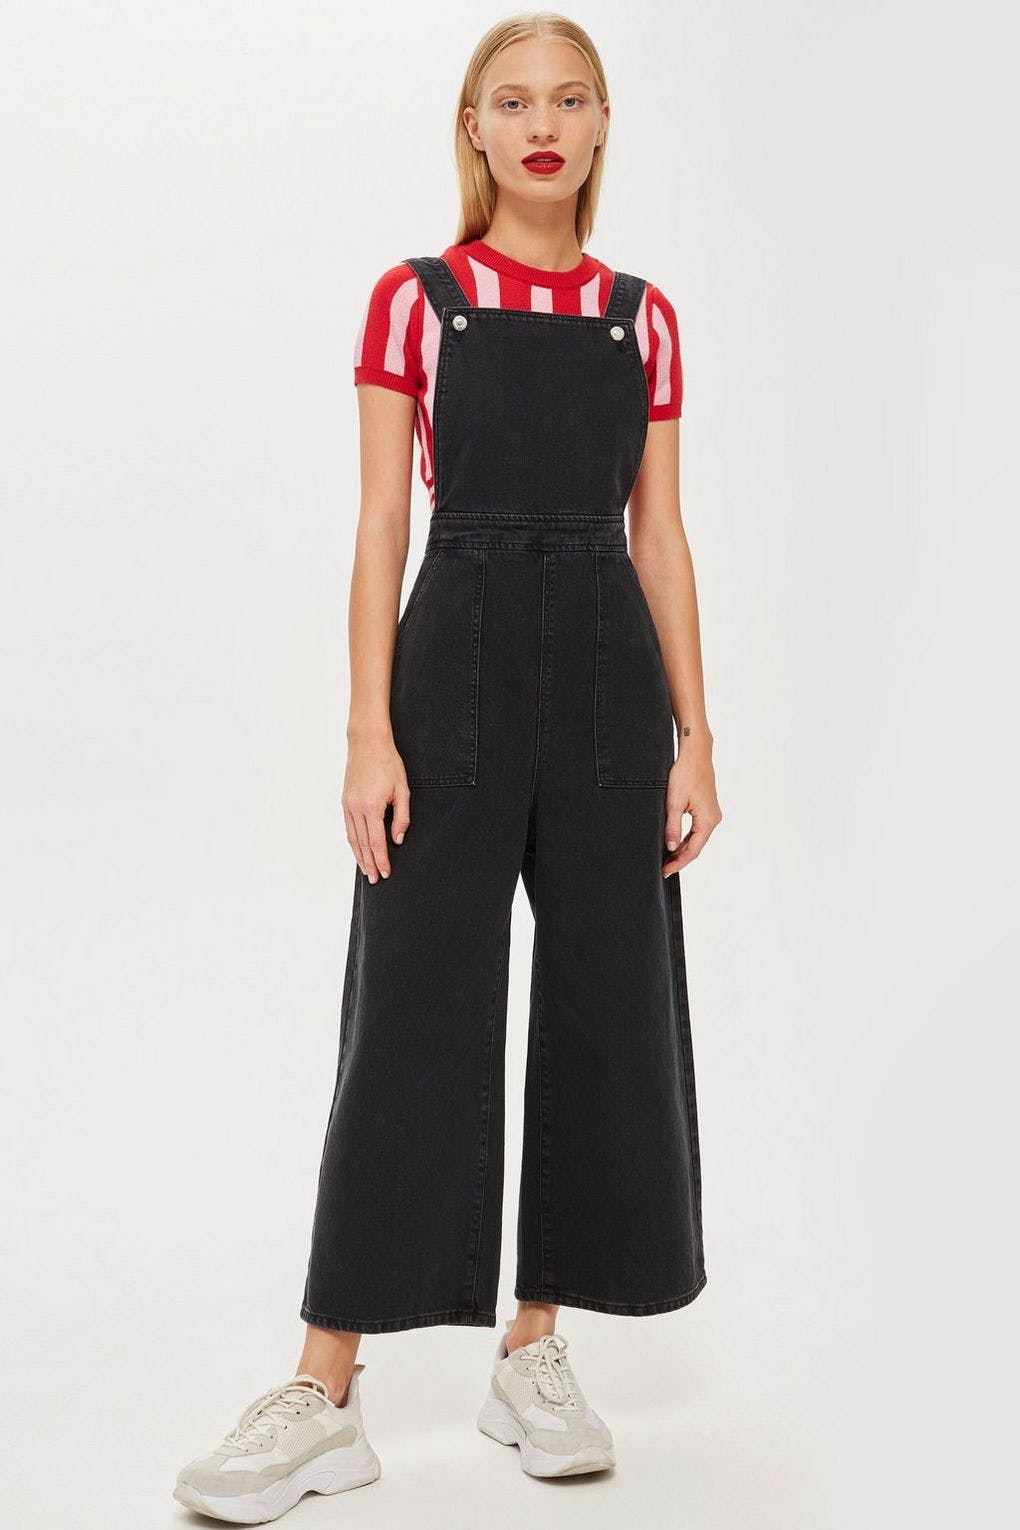 The Cropped Wide Leg Overalls